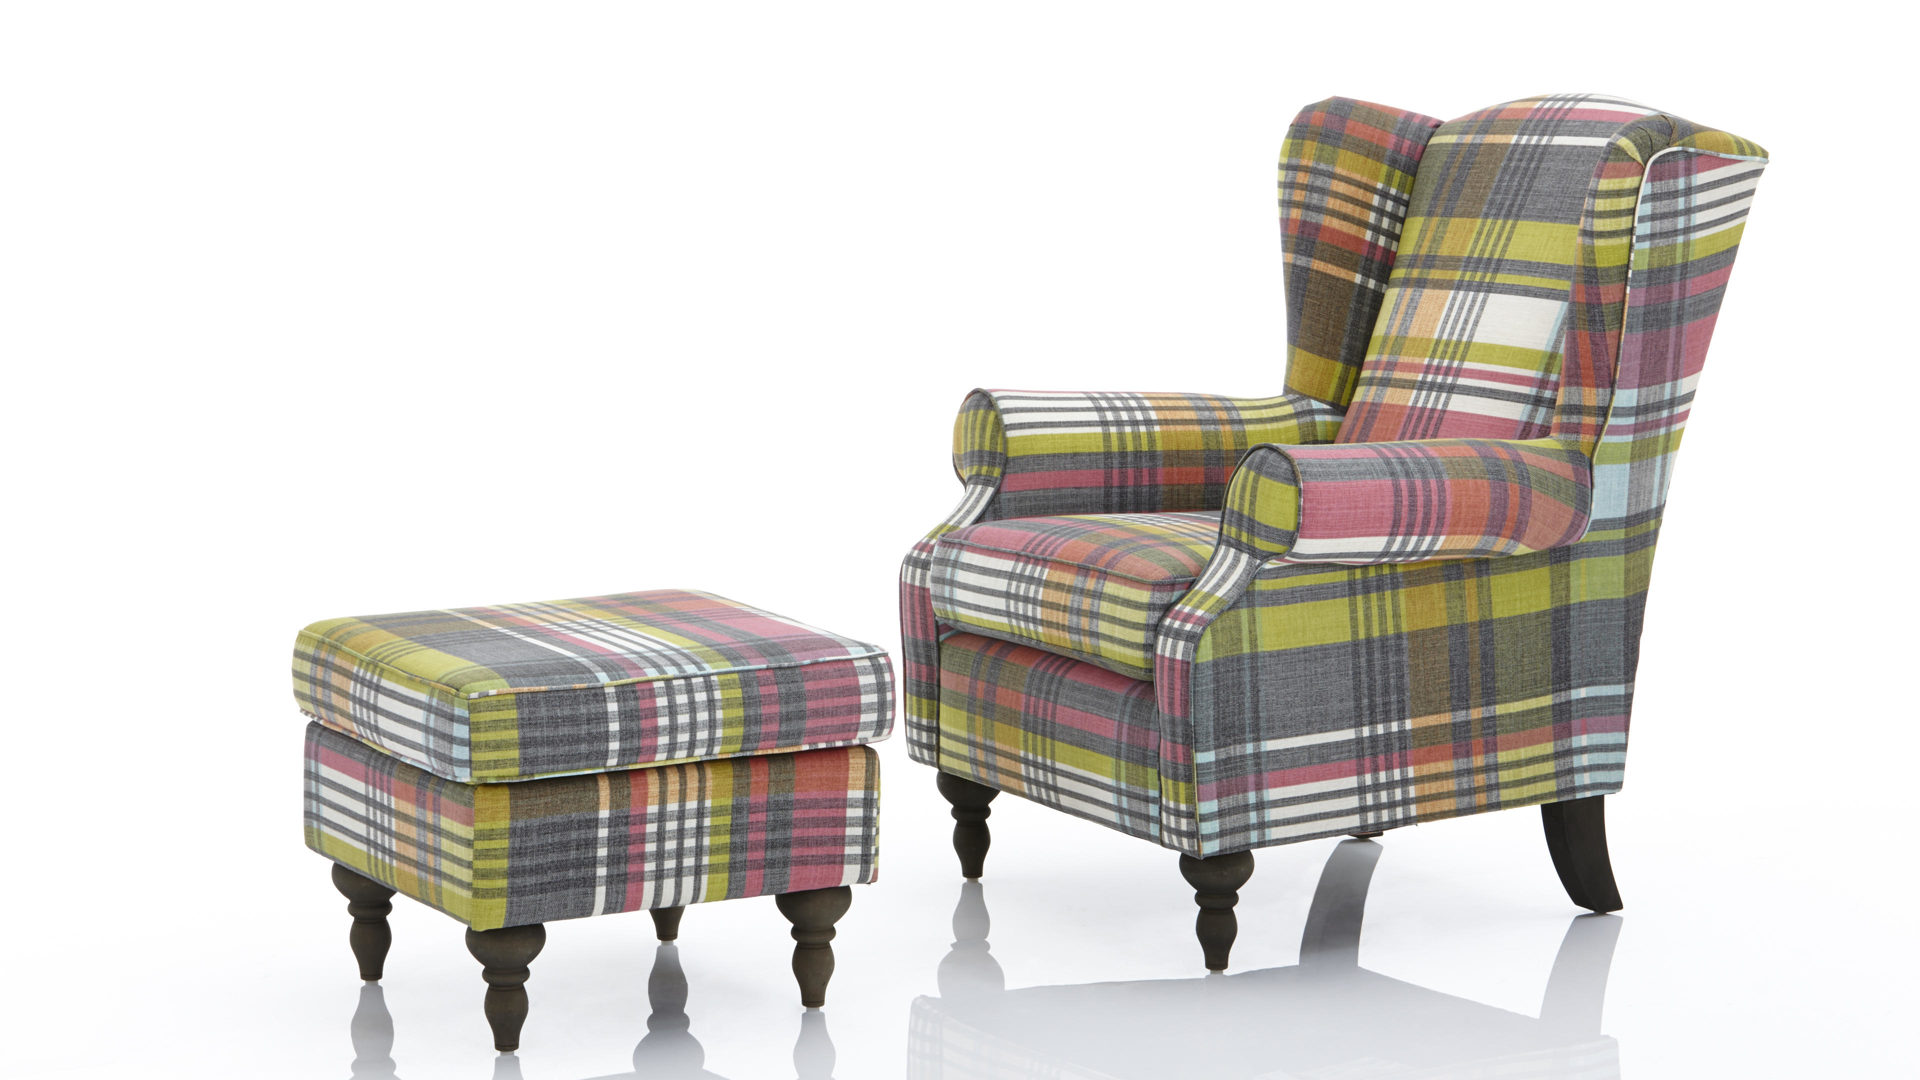 Sessel ikea bunt  Patchwork Ohrensessel. Patchwork Sessel Florese With Patchwork ...